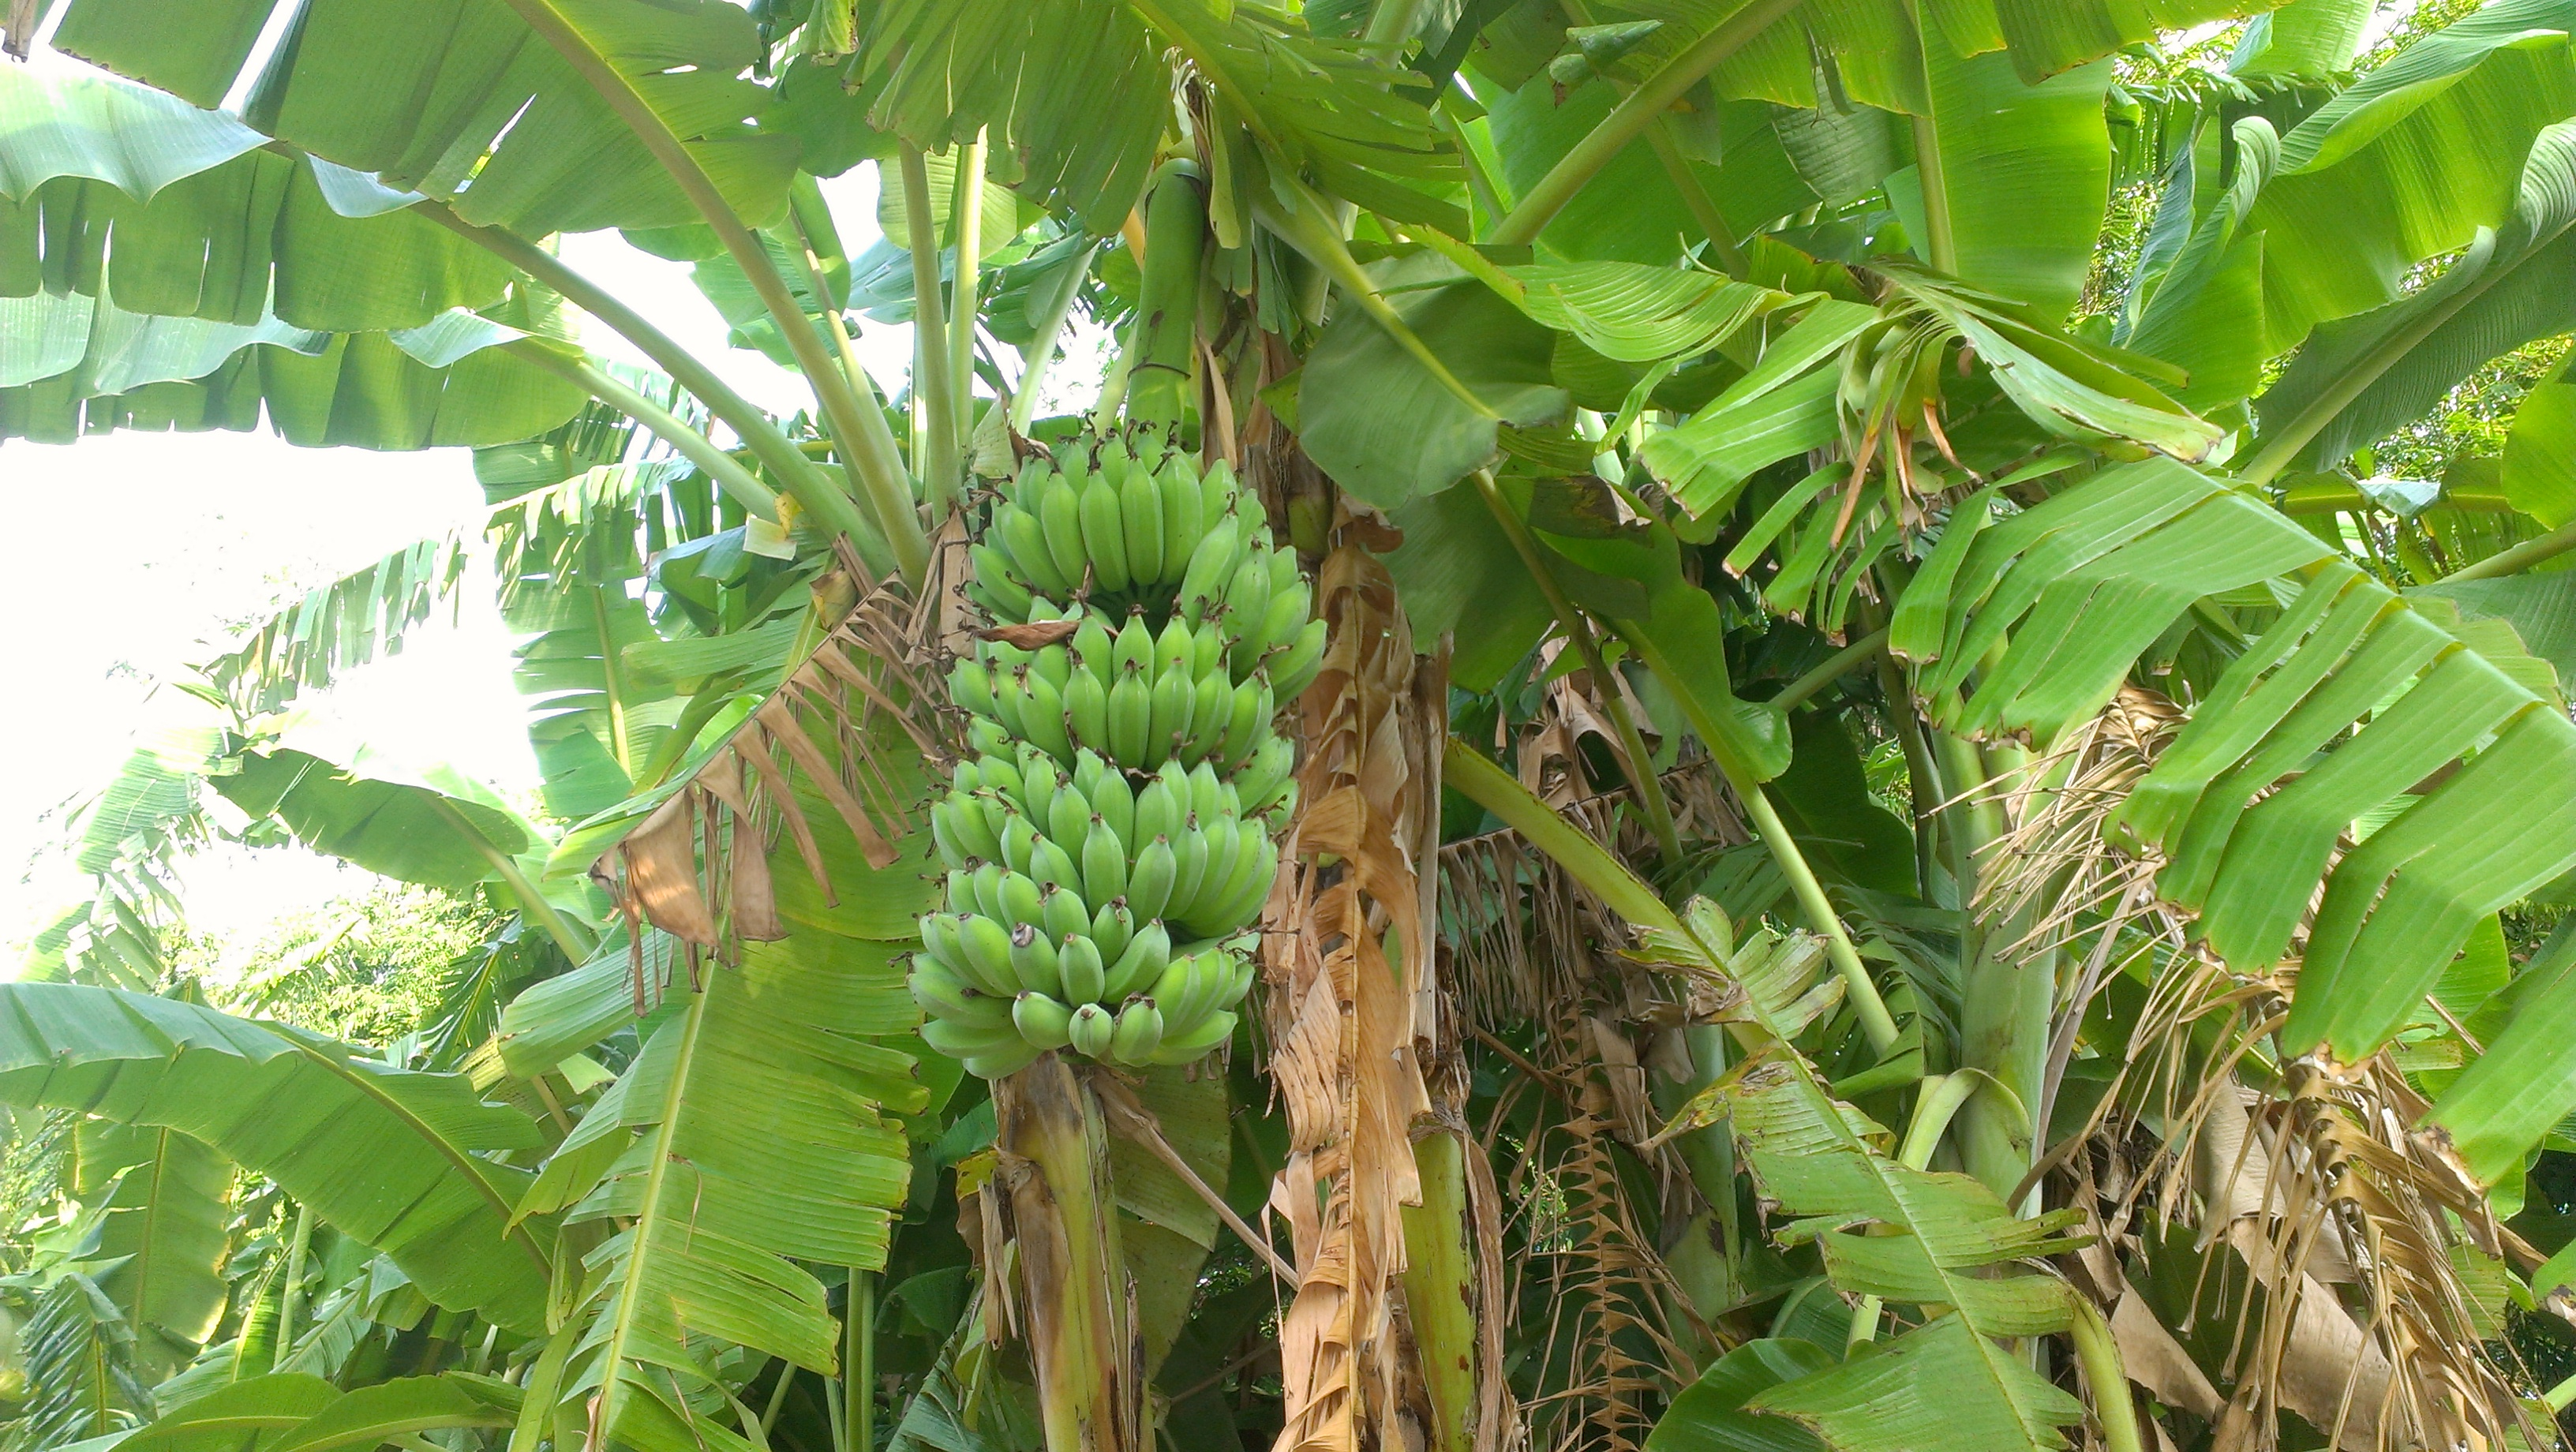 Morphology of the banana plant